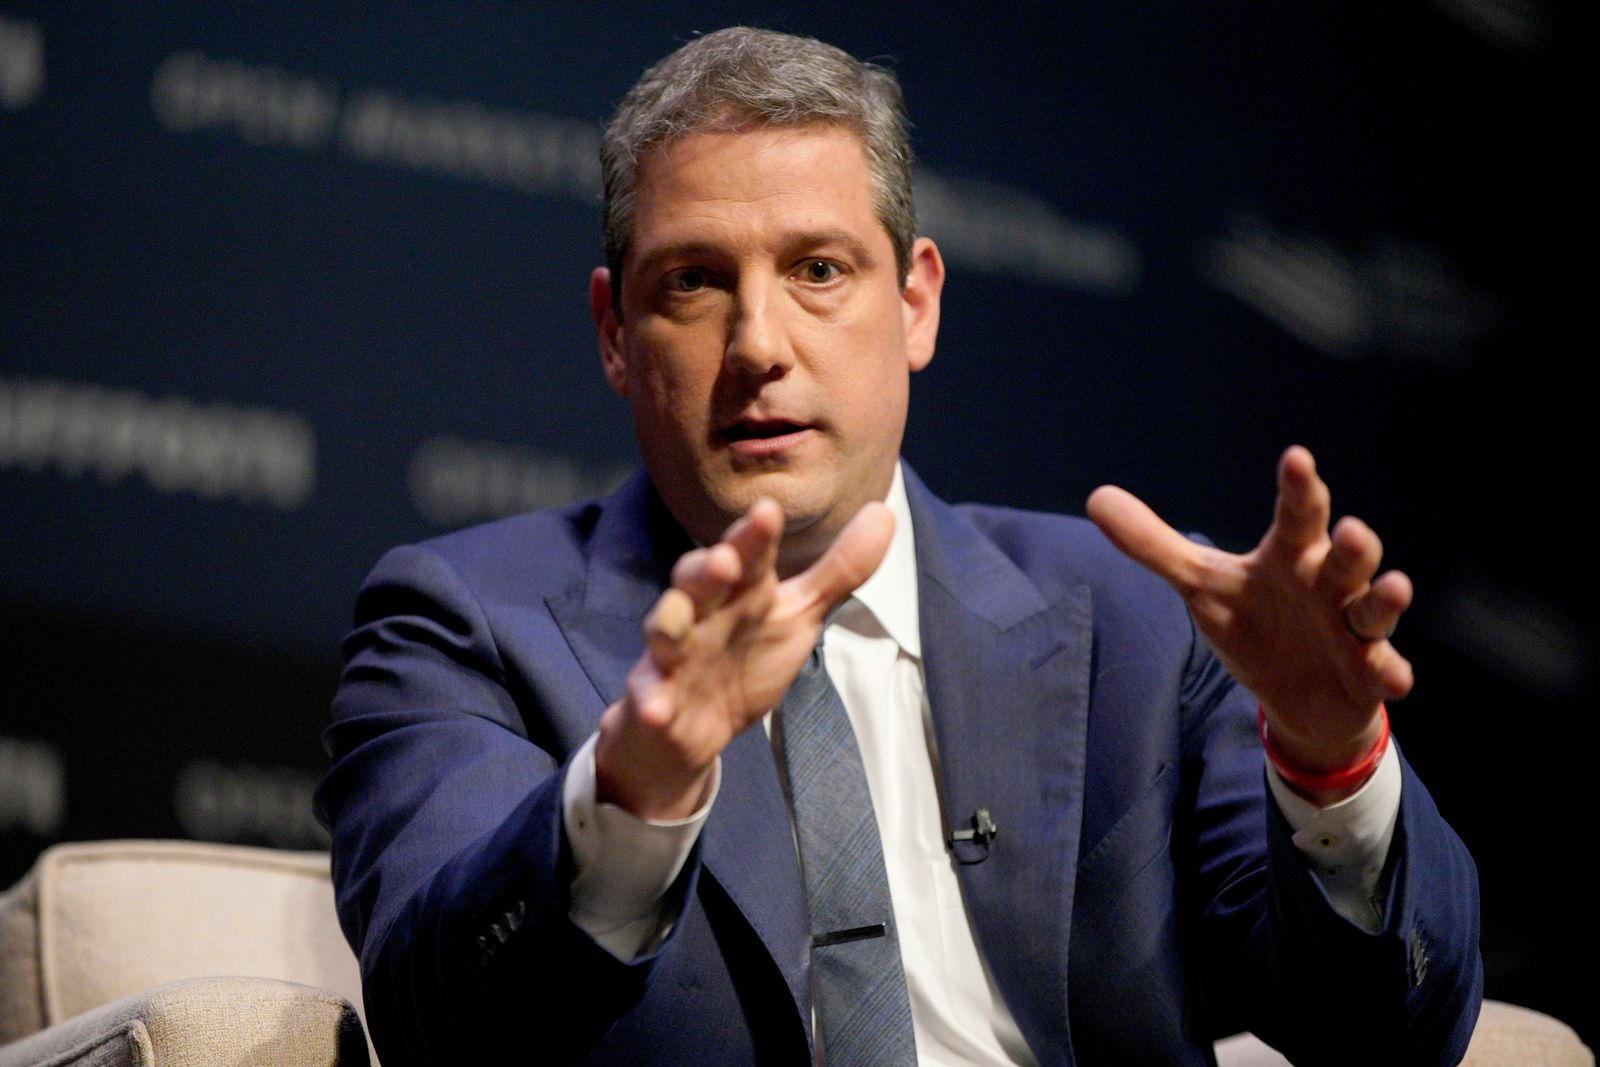 Rep. Tim Ryan, D-Ohio, speaks at the Heartland Forum on the campus of Buena Vista University in Storm Lake, Iowa, Saturday, March 30, 2019. (AP Photo/Nati Harnik)